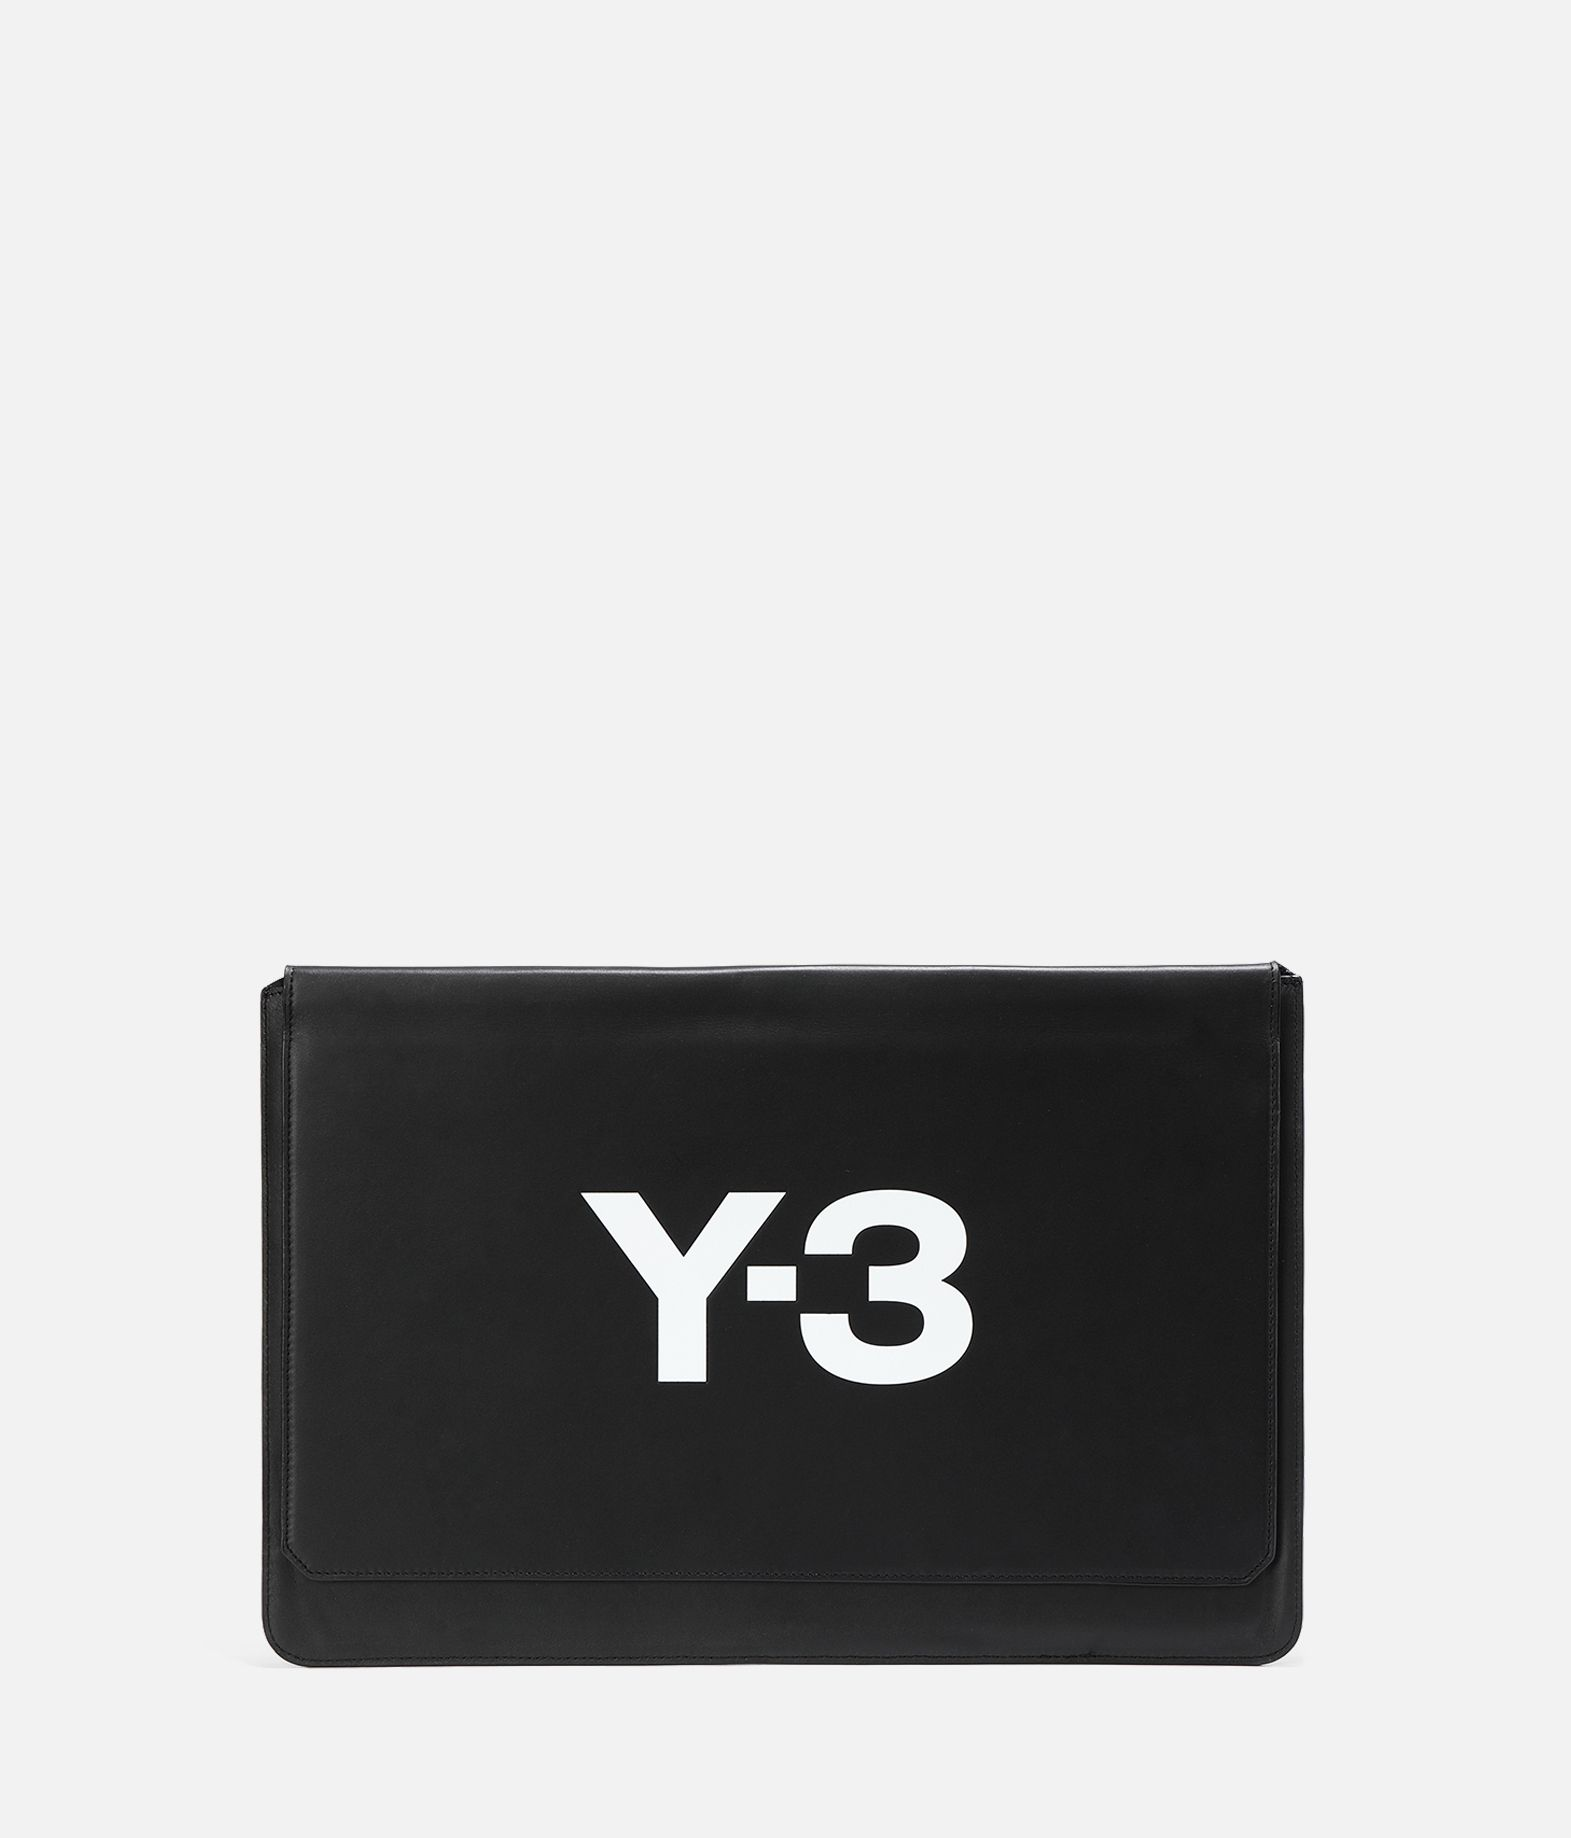 "Y-3 Y-3 Laptop Sleeve 13"" Laptop Sleeve E f"